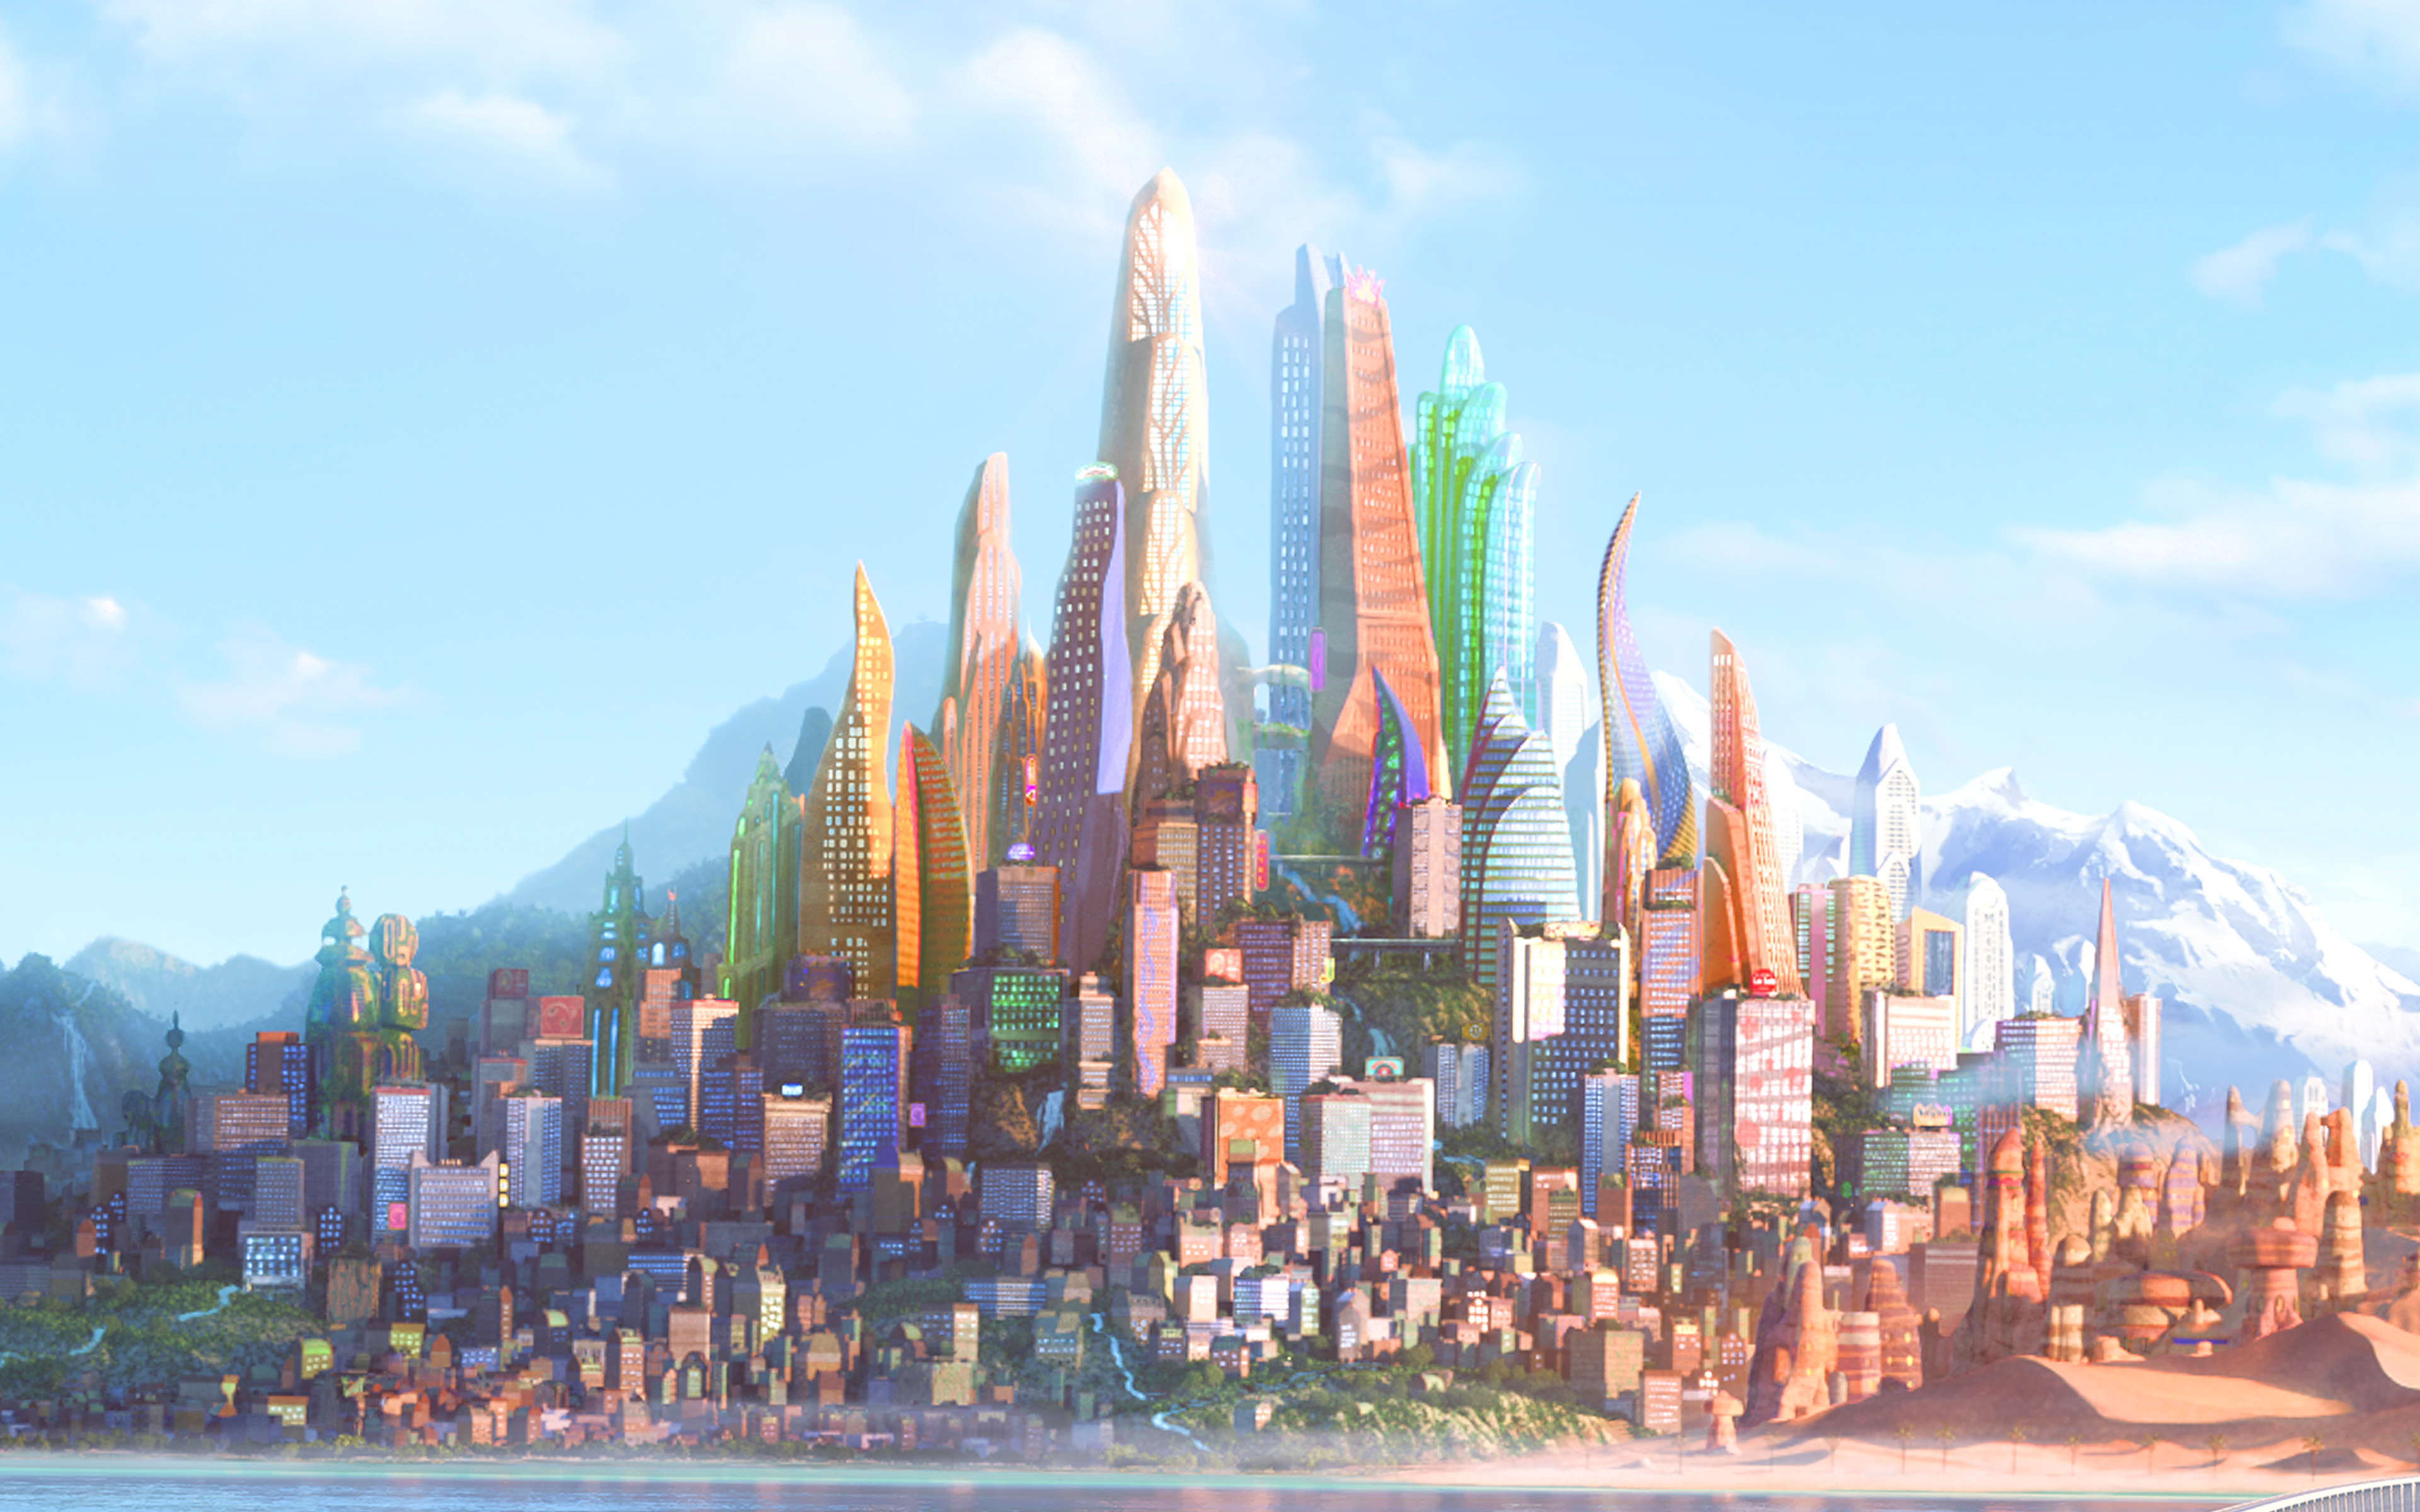 Fall Wallpaper For Macbook Pro Aq42 Art Zootopia Disney City Wallpaper